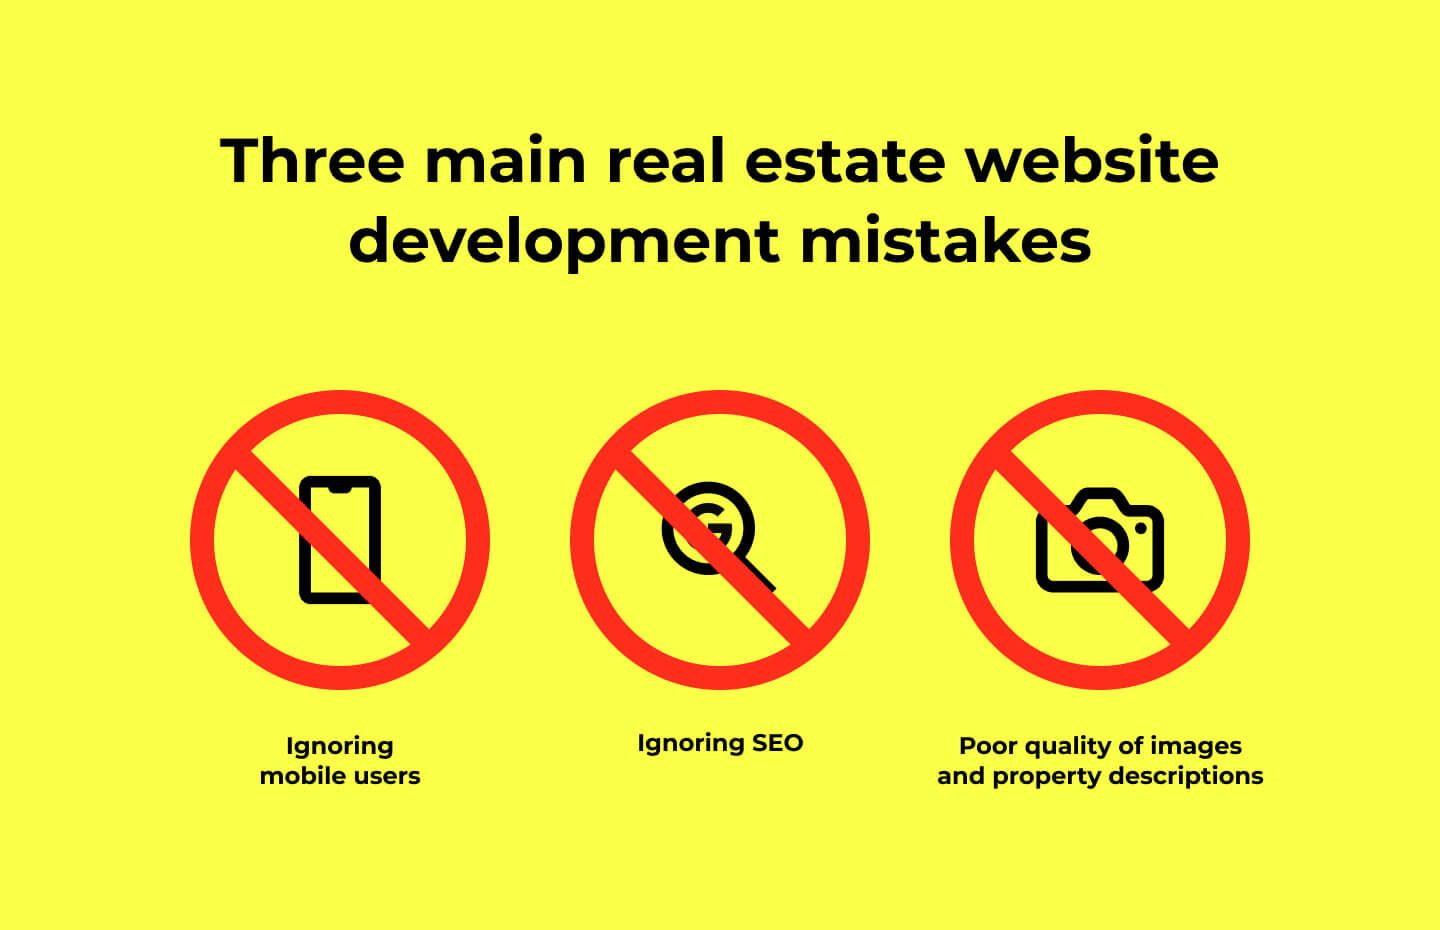 real estate website development mistakes